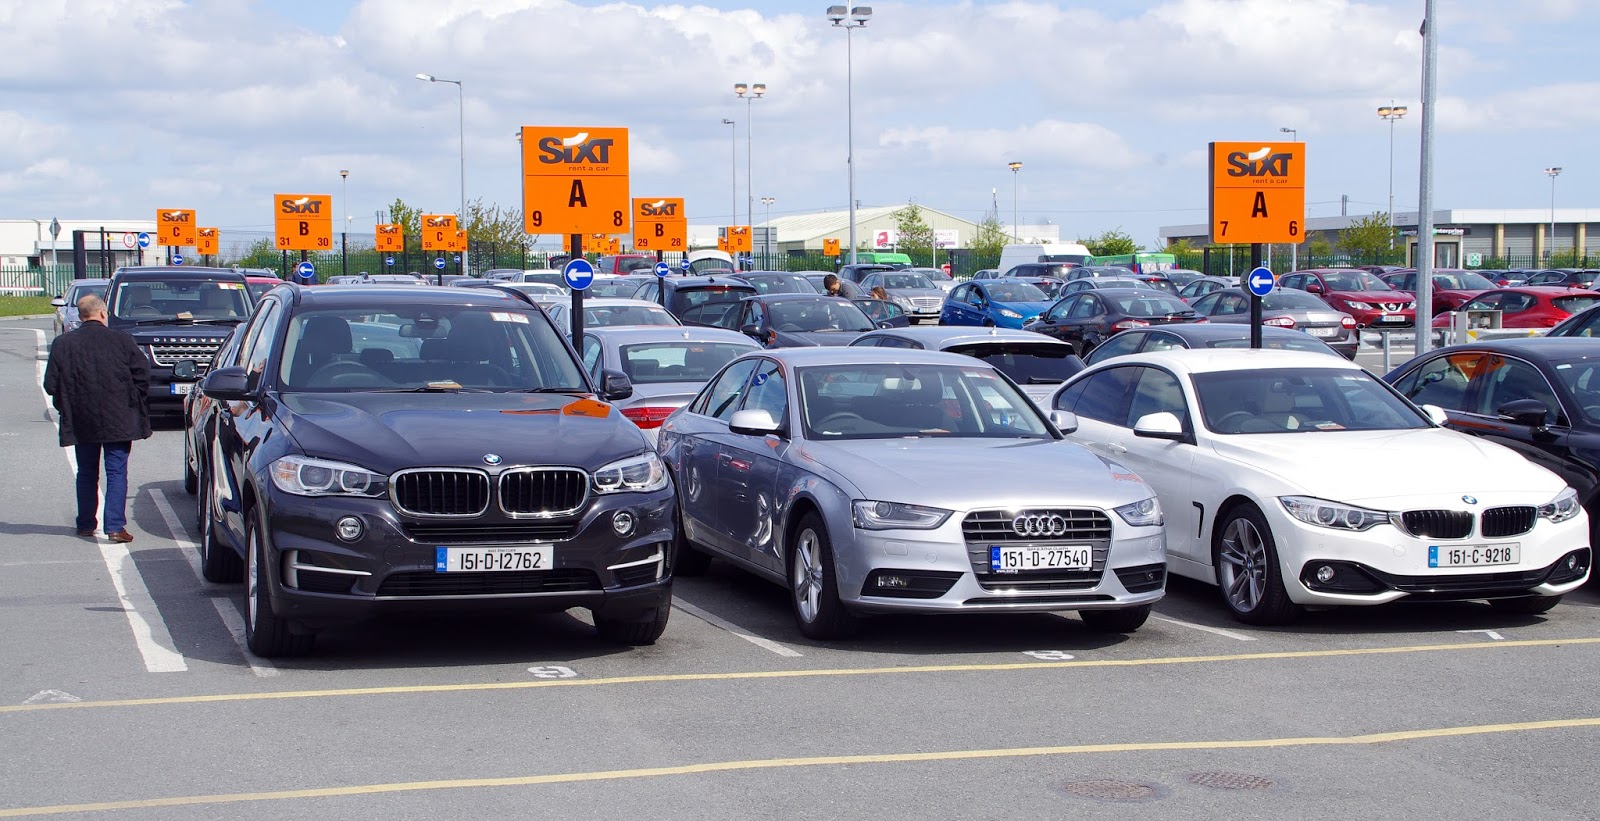 Sixt Car Hire Ireland Dublin Airport